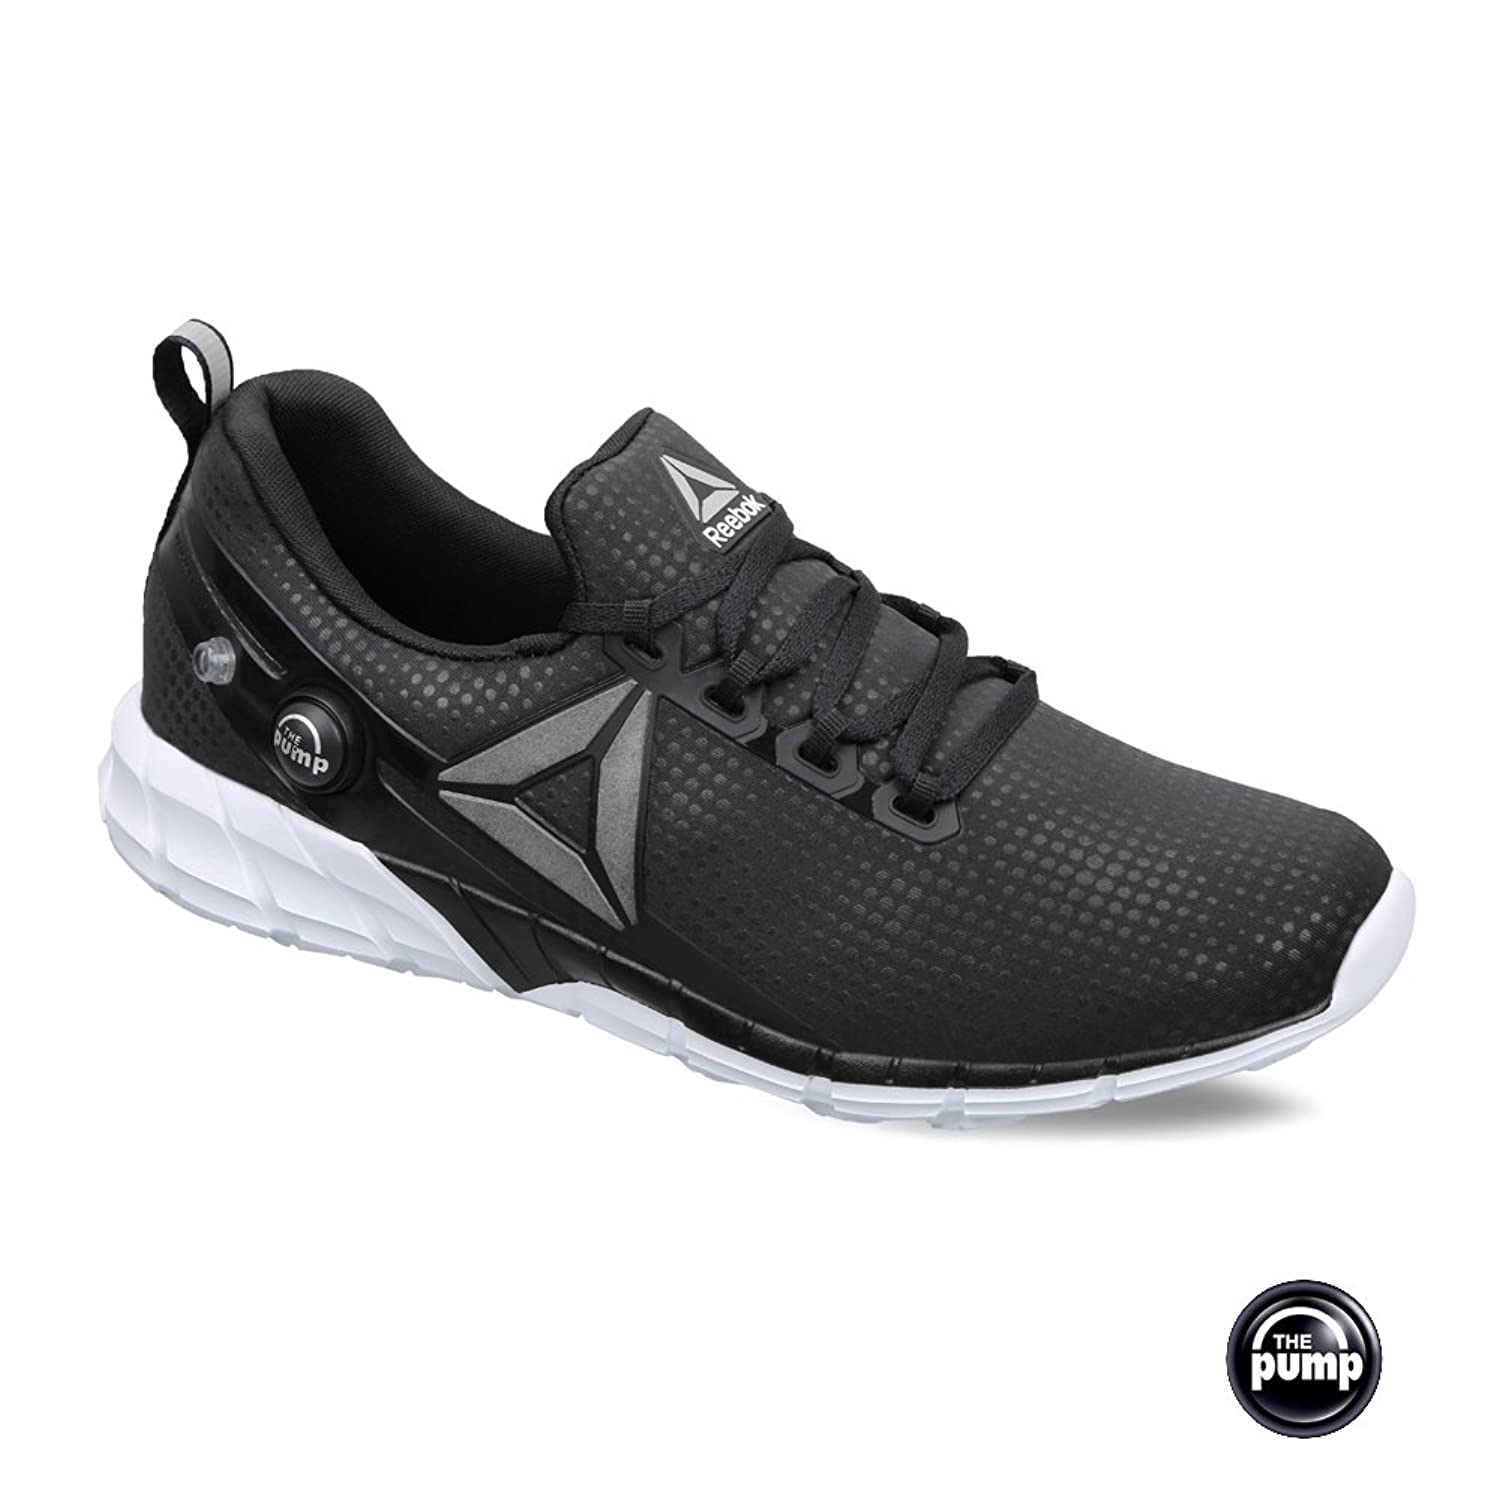 Buy To up Discounts Reebok Shoes Sale Pump 30 Online Or1qOw